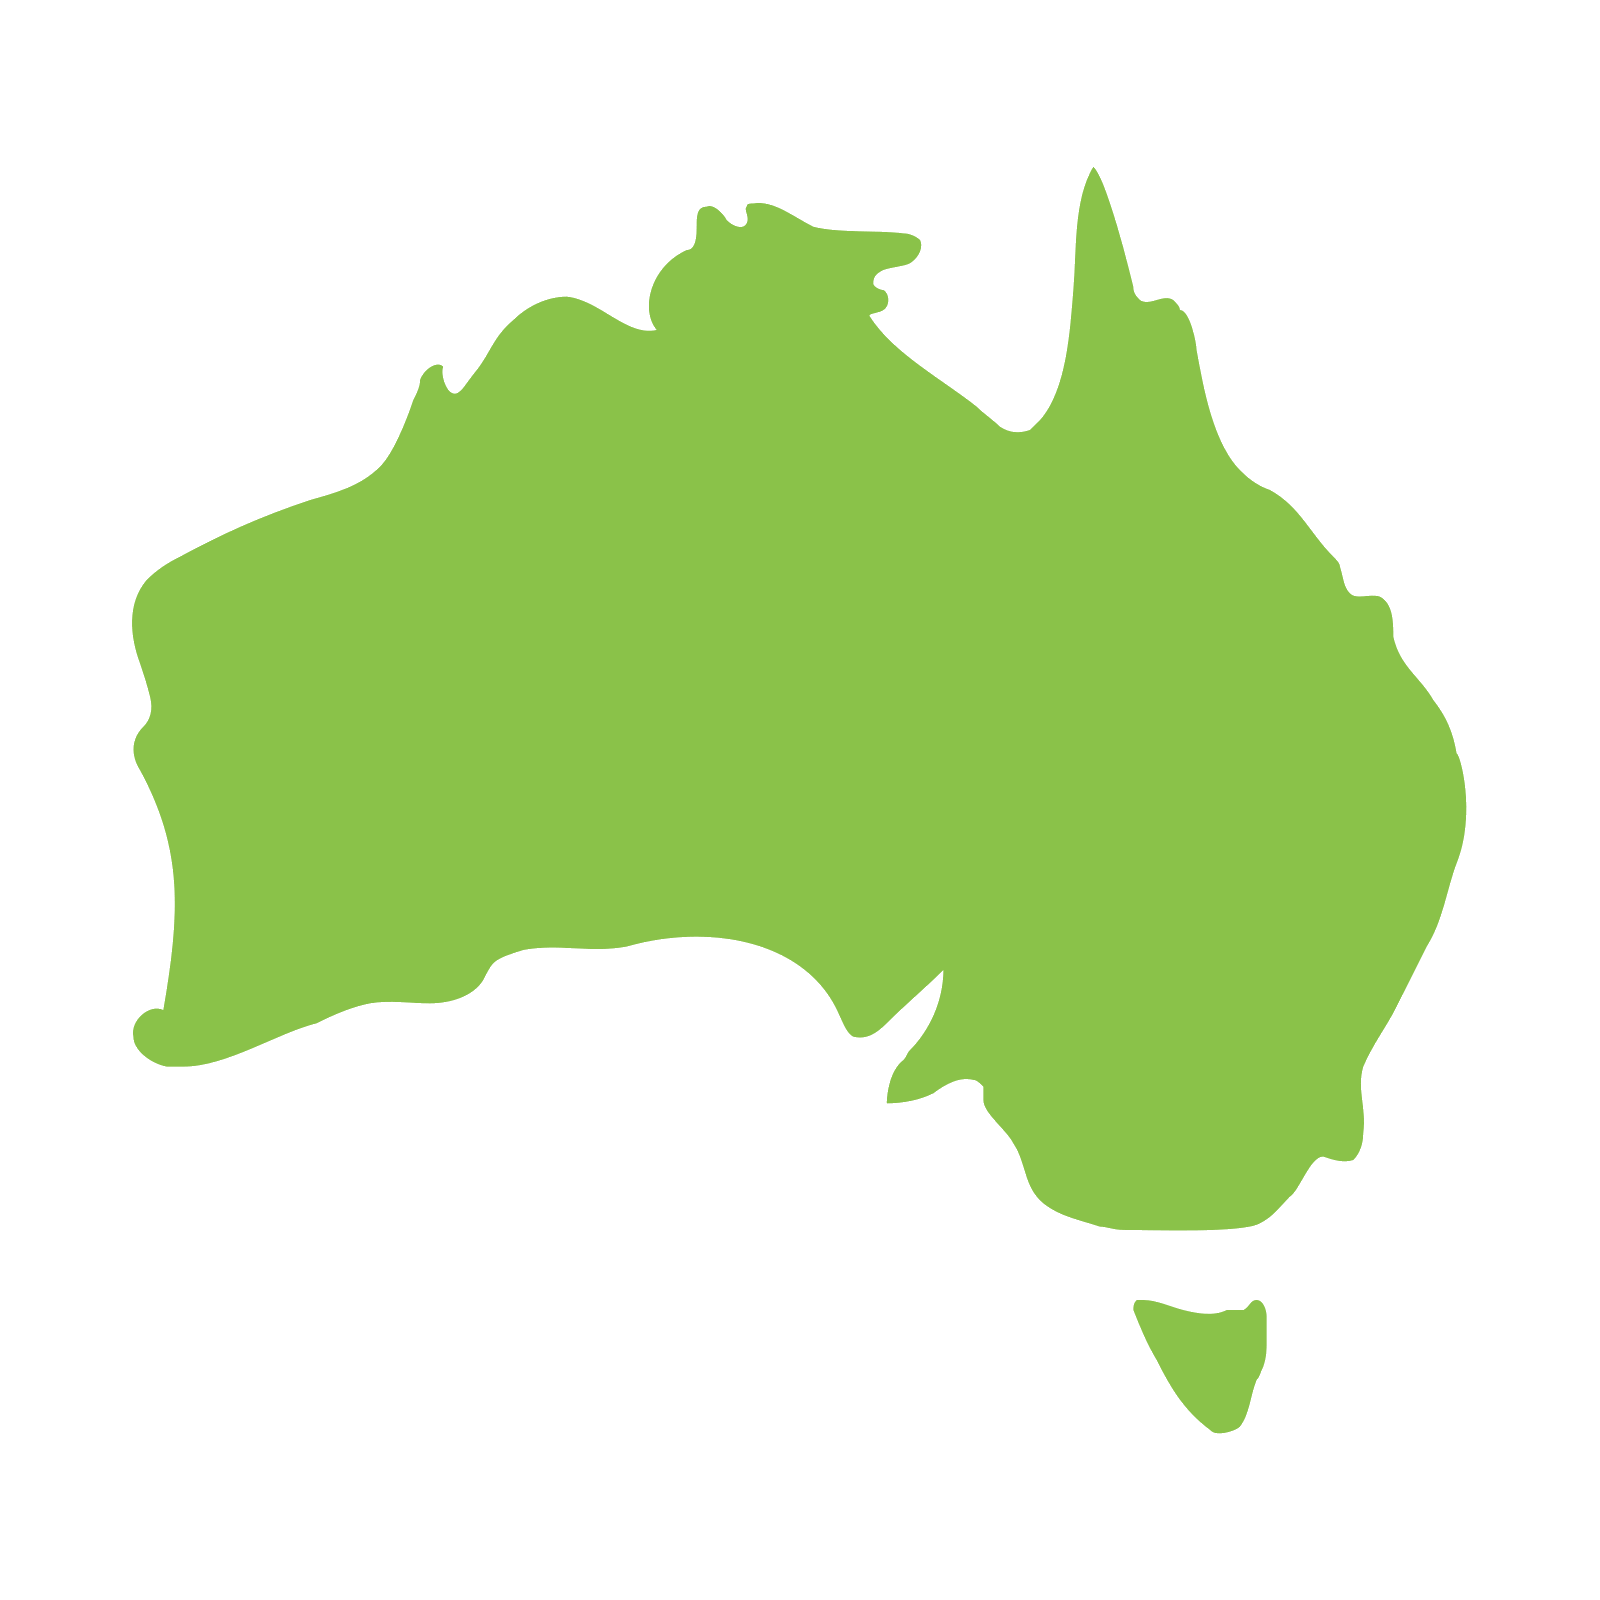 Png country. Australia map icon